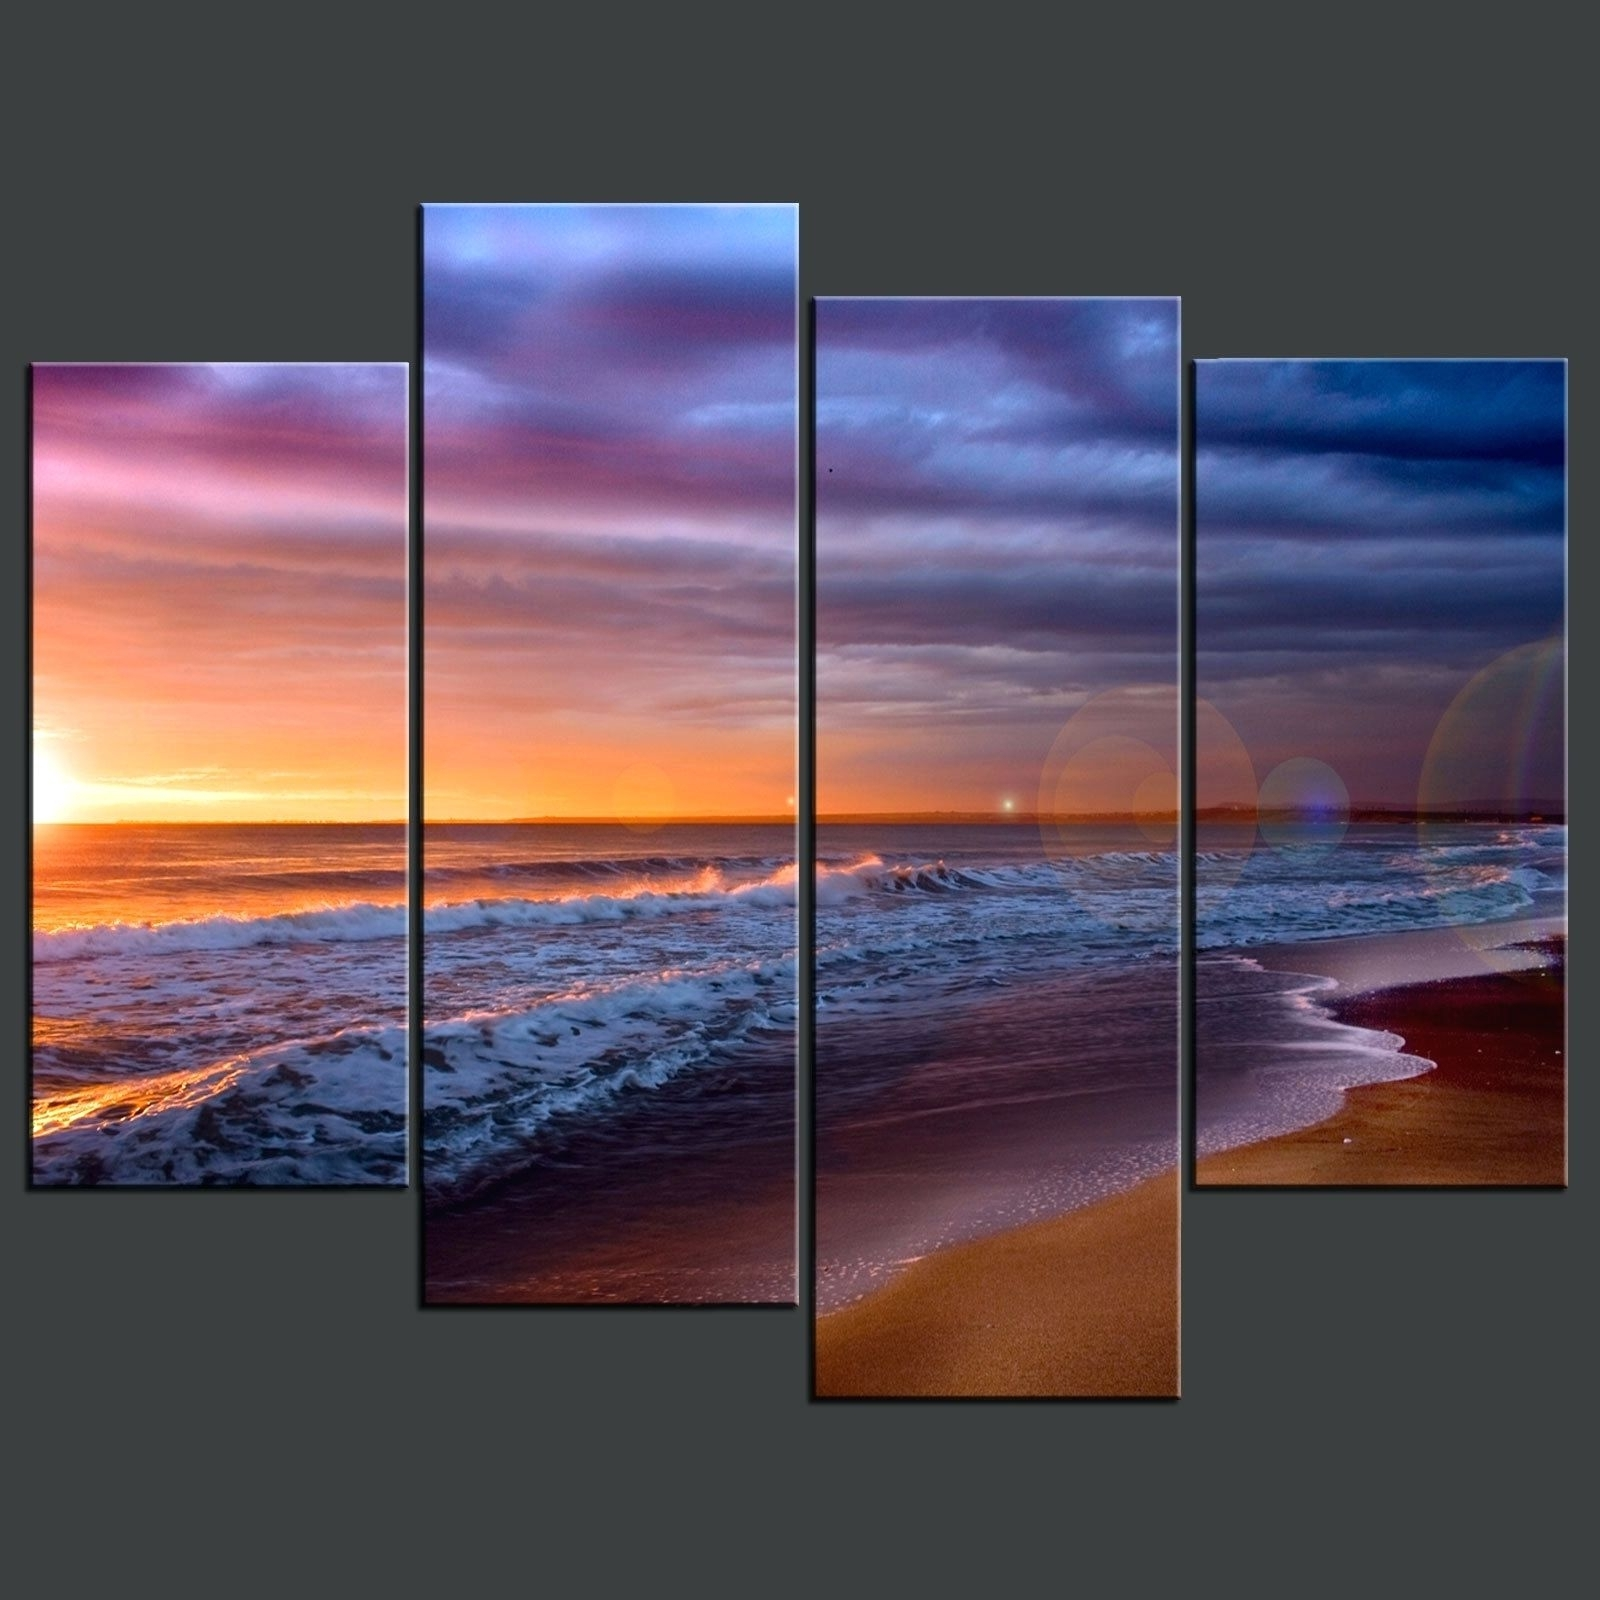 Canvas Wall Art Beach Scenes For Most Recent Wall Arts ~ Beach Scene Wall Art Canvas Beach Themed Canvas Wall (View 5 of 15)